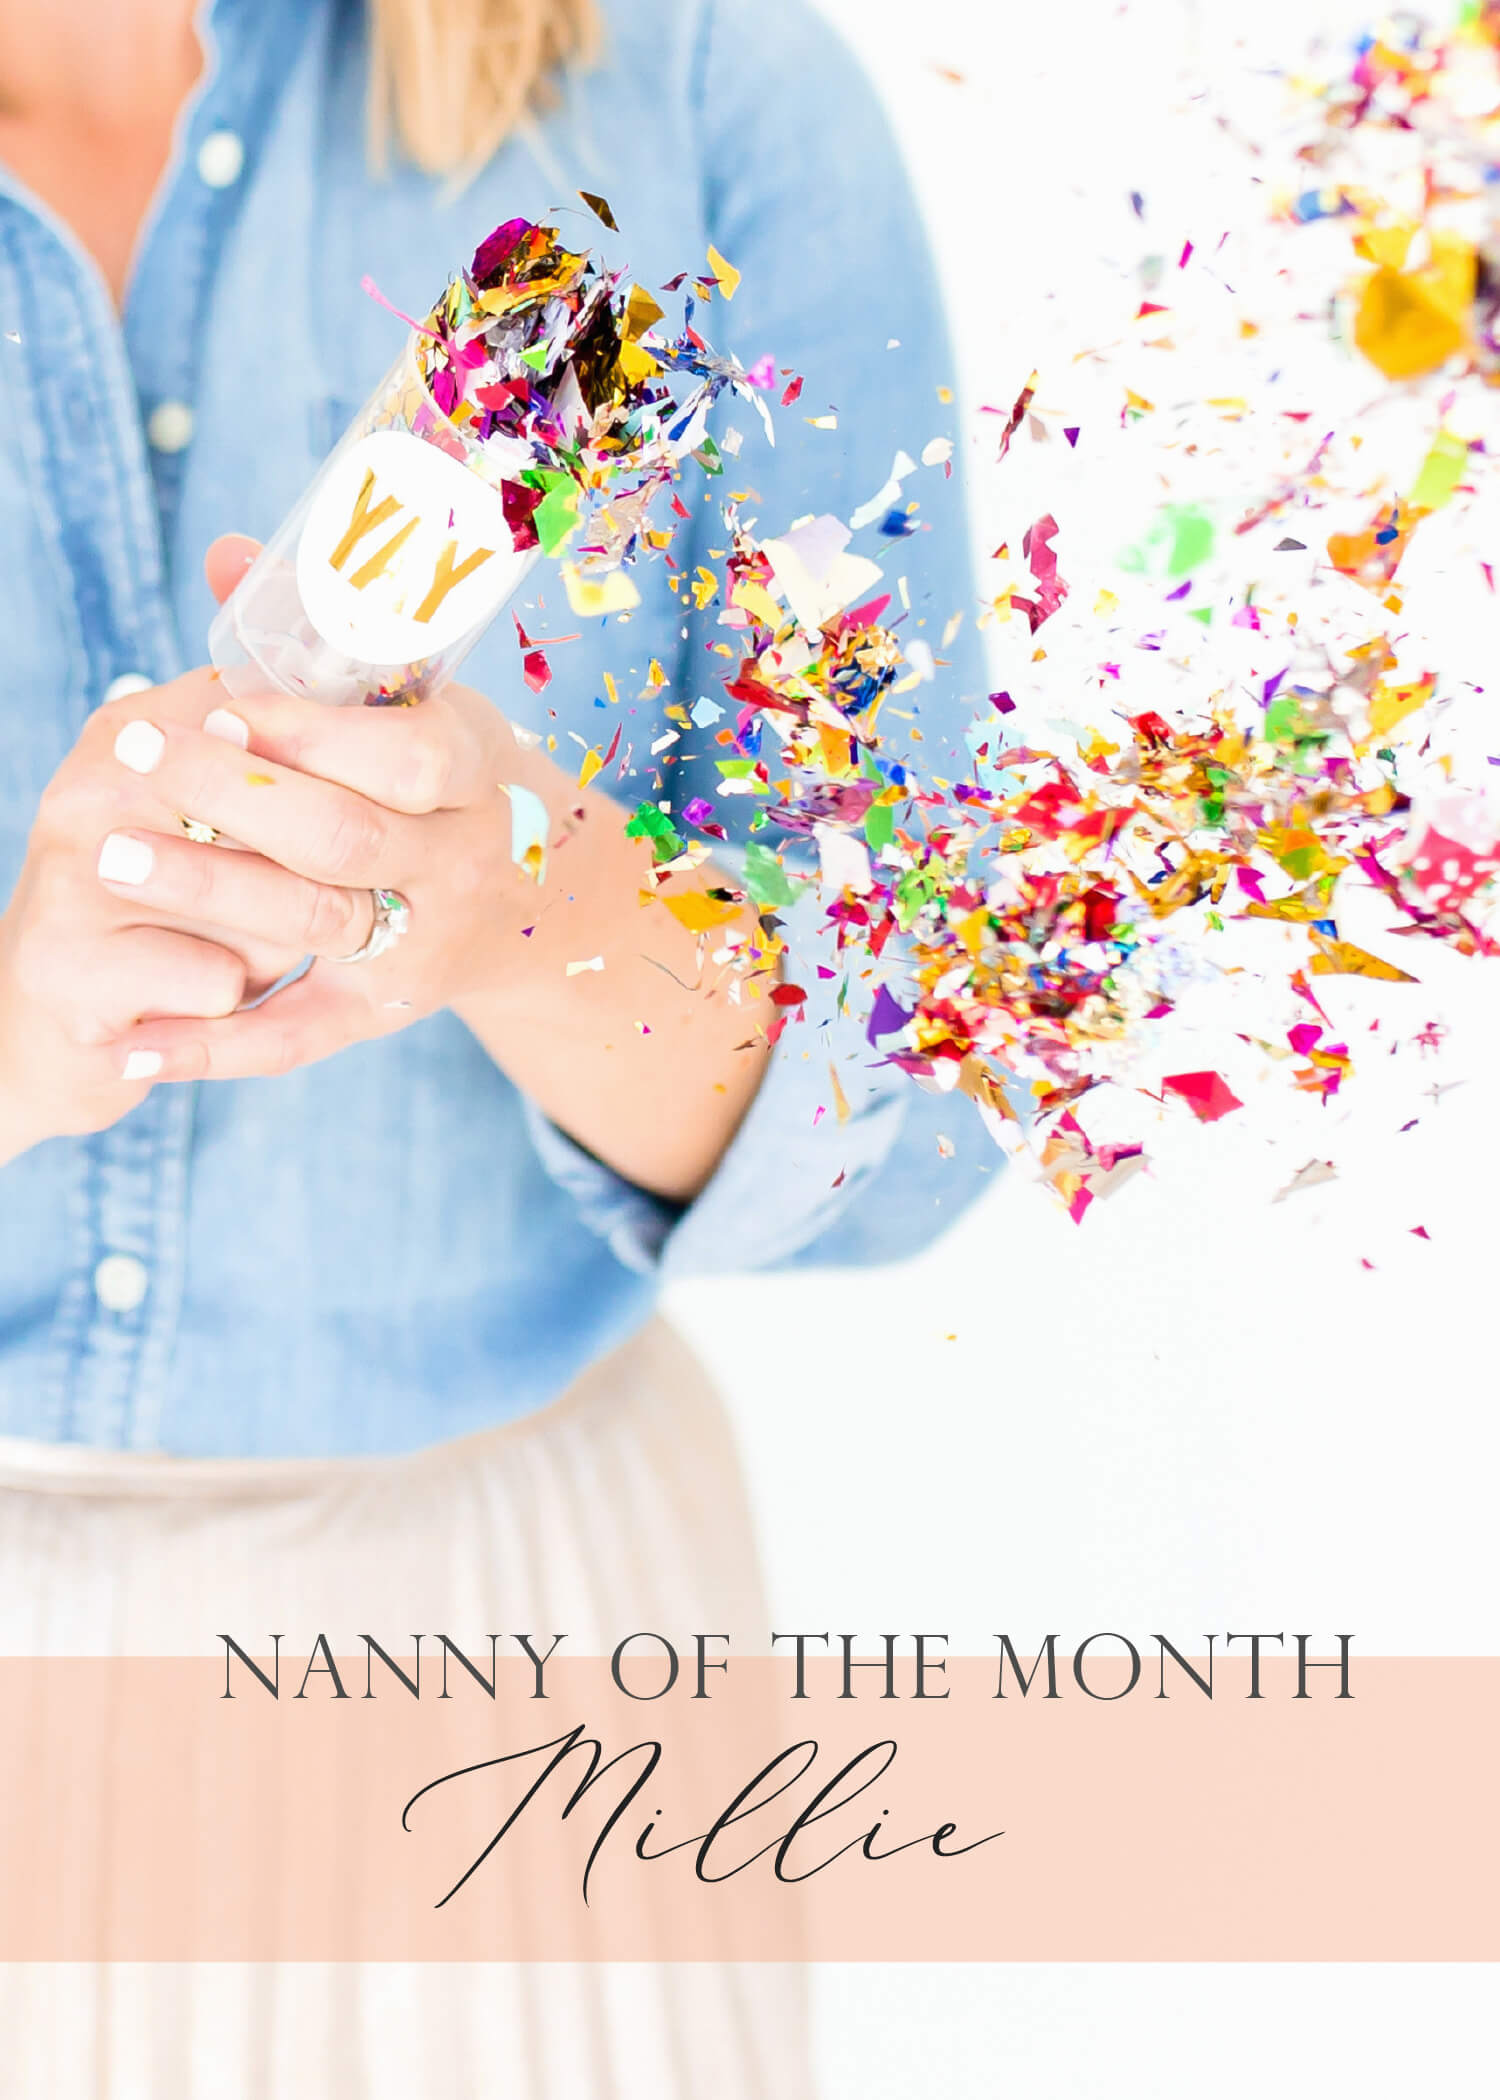 Nanny Of The Month   November 2018   Meet Millie